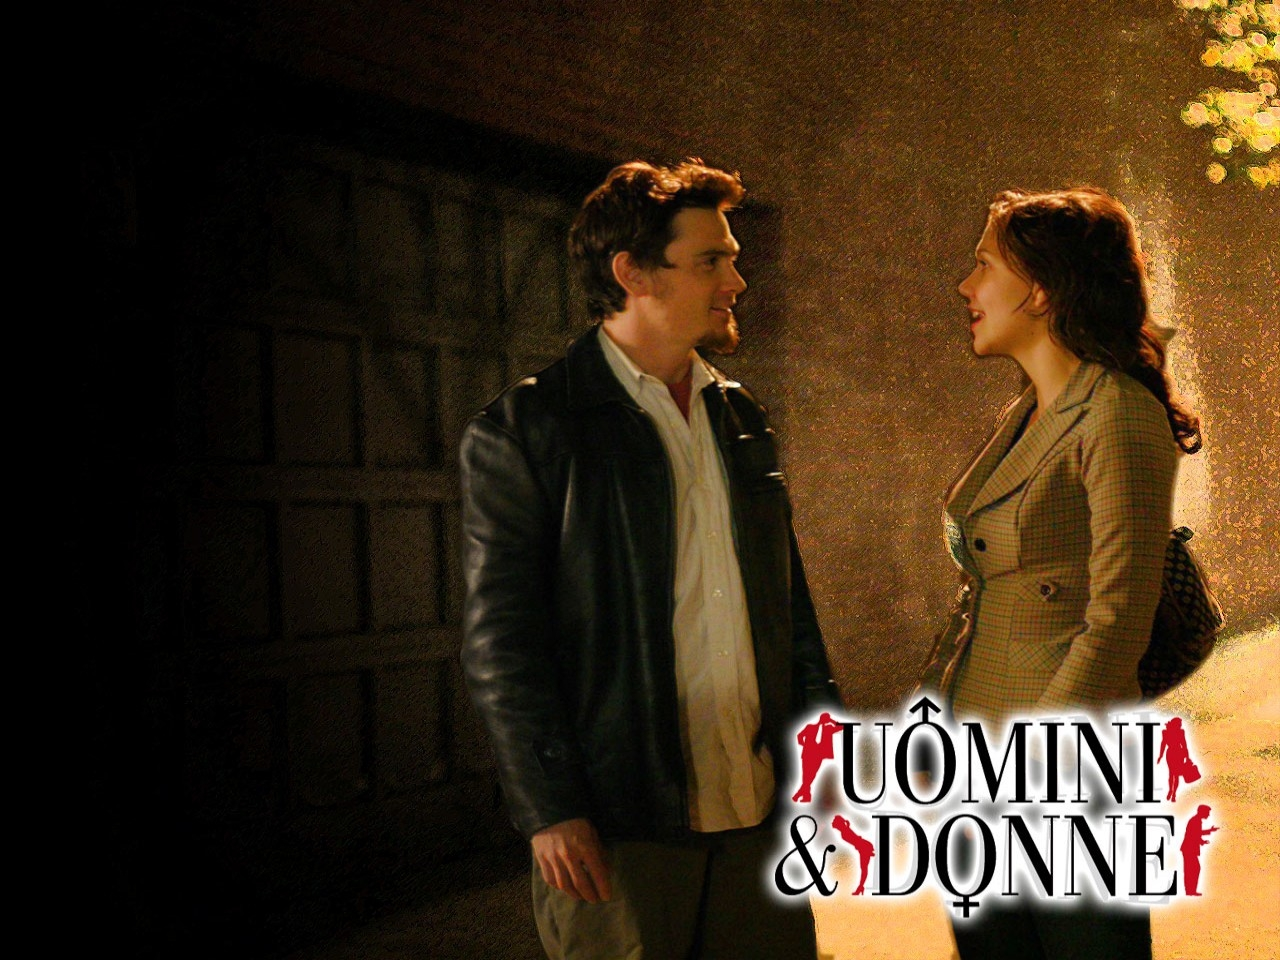 Wallpaper del film Uomini & donne